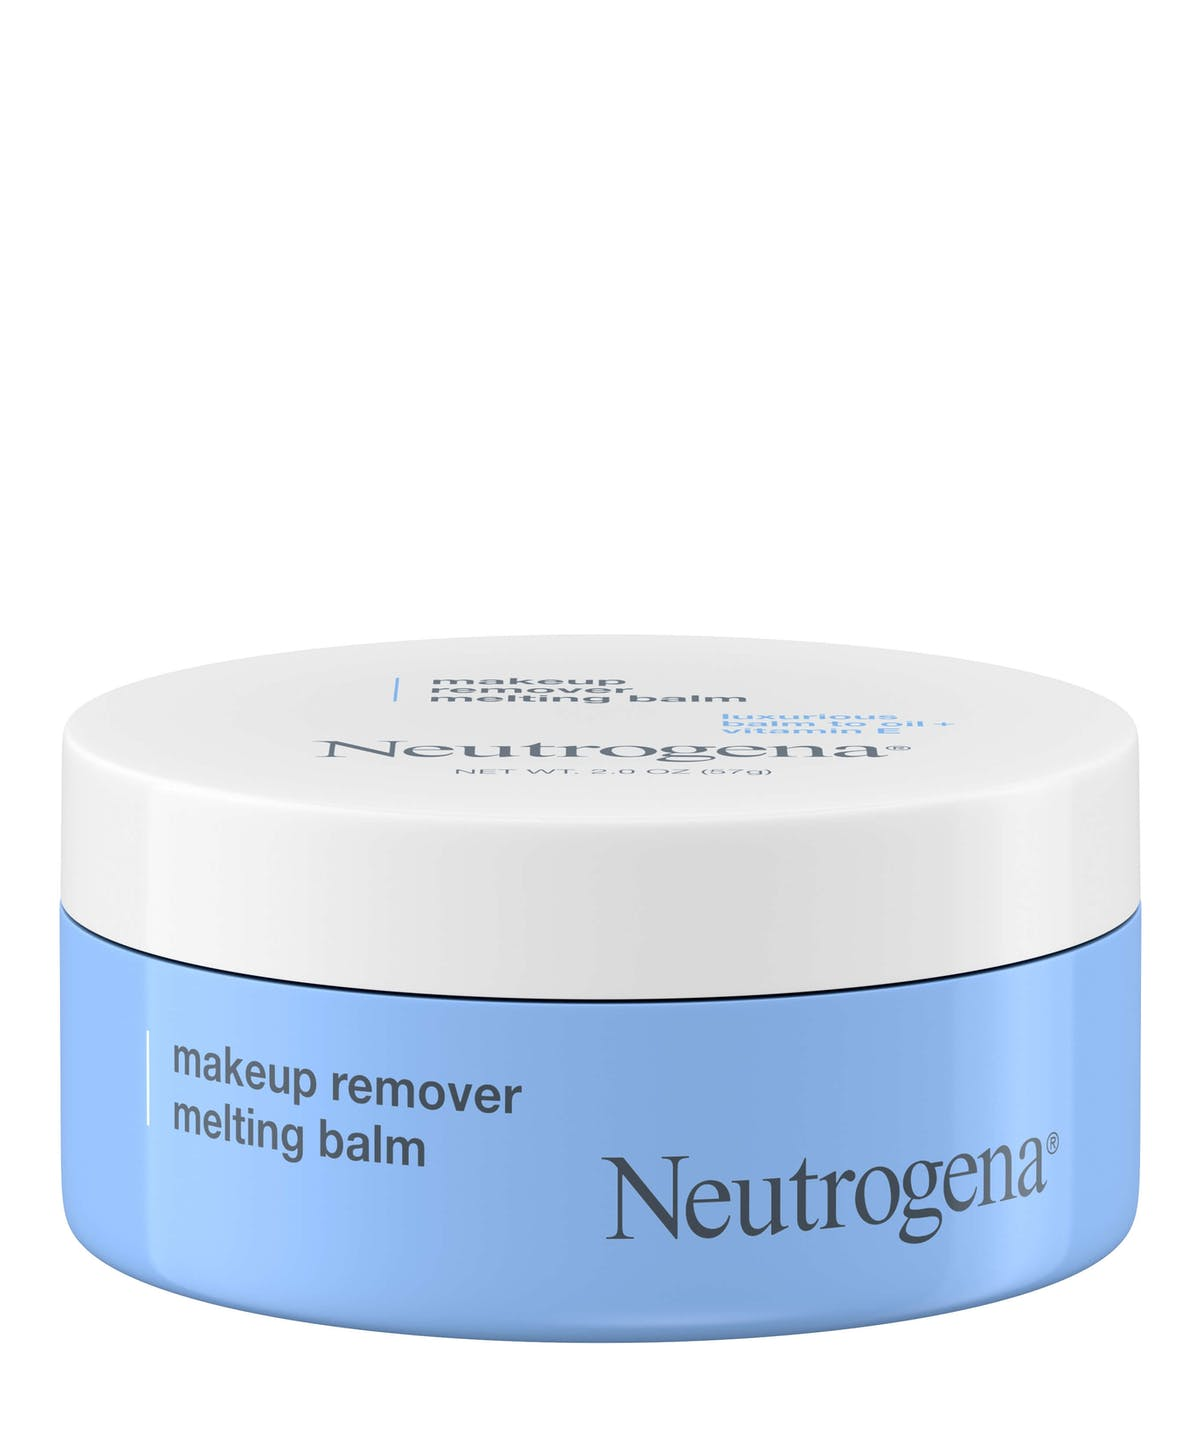 cleansing-balm-neutrogena makeup remover melting balm